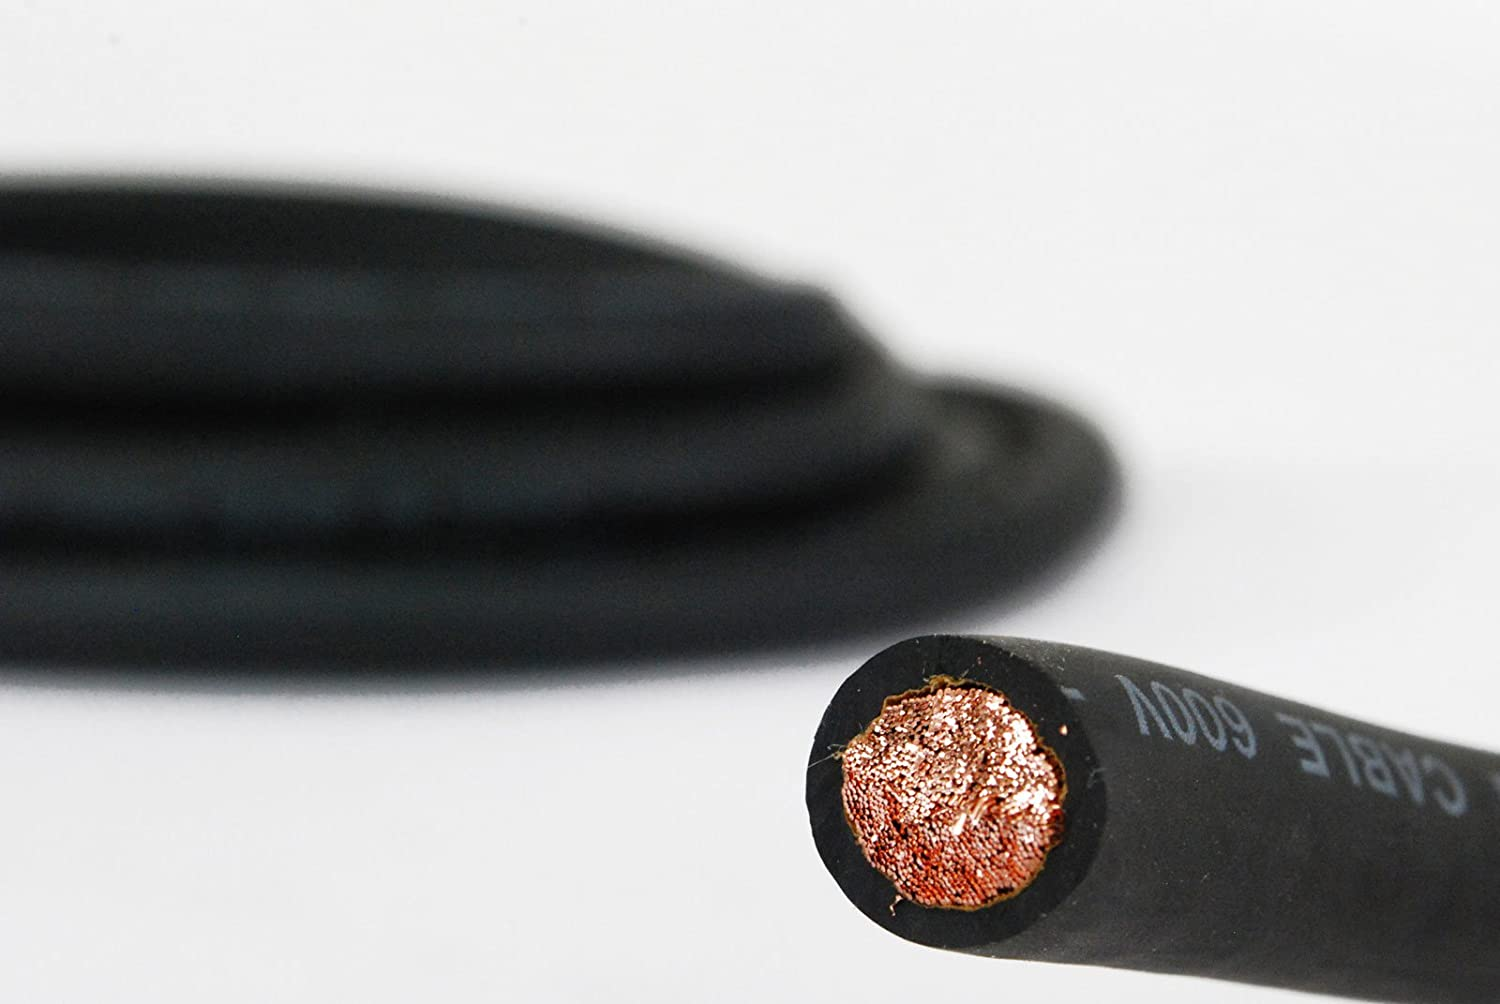 RED 4//0 Gauge AWG Welding Lead /& Car Battery Cable Copper Wire BLACK 5 Blk, 5 Red TEMCo WC0339-10 MADE IN USA